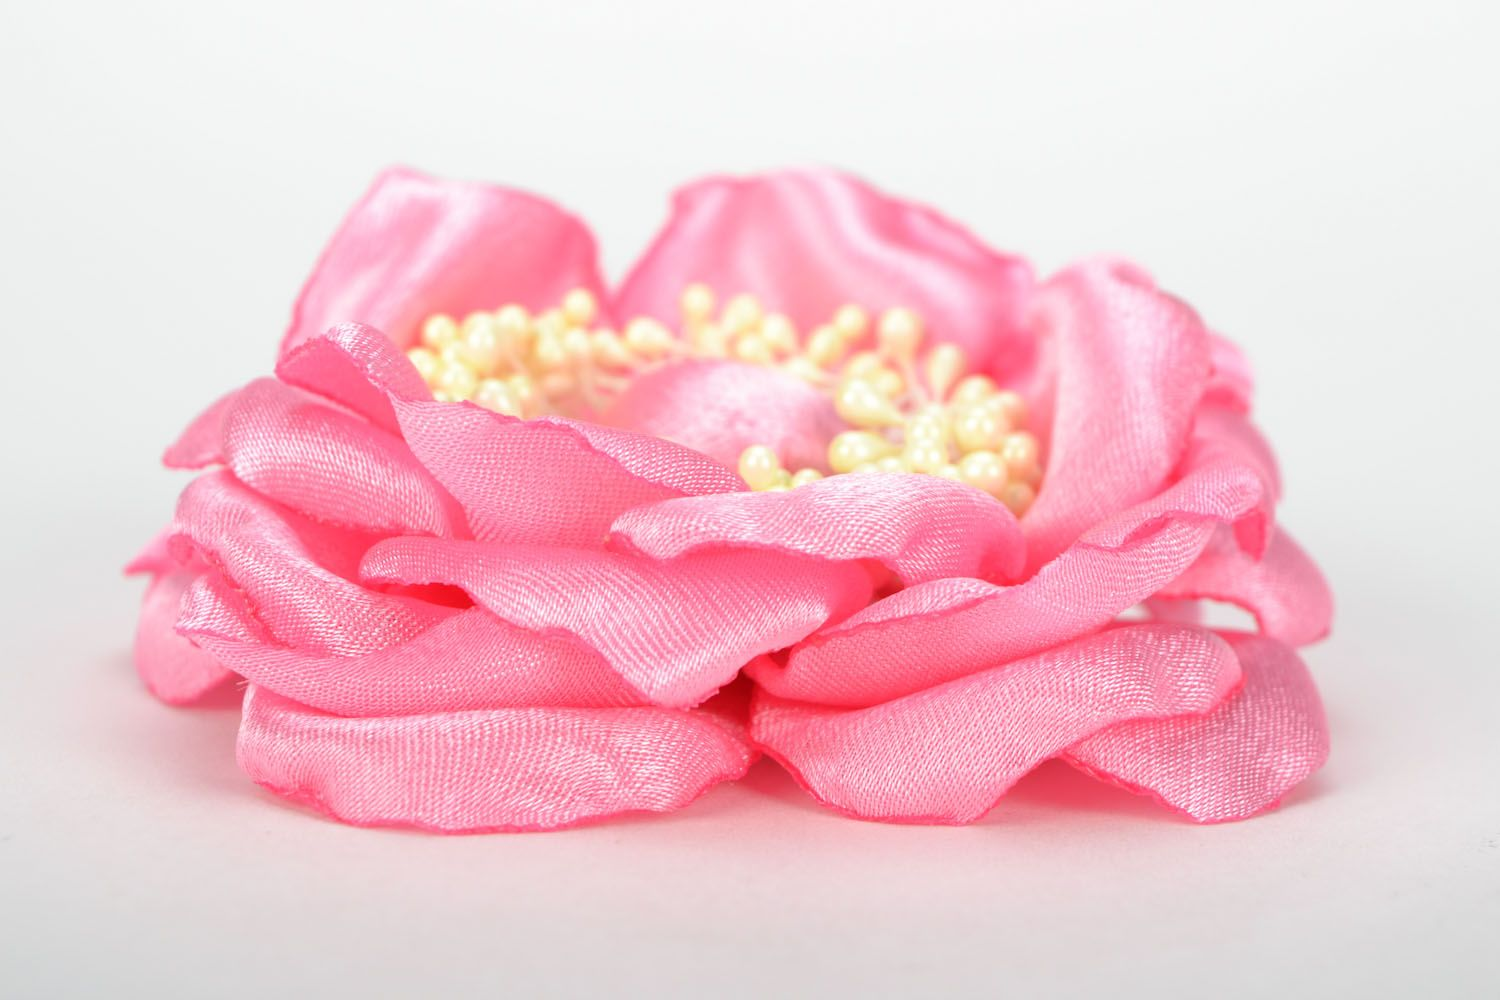 Flower brooch pin Pink Flower photo 4